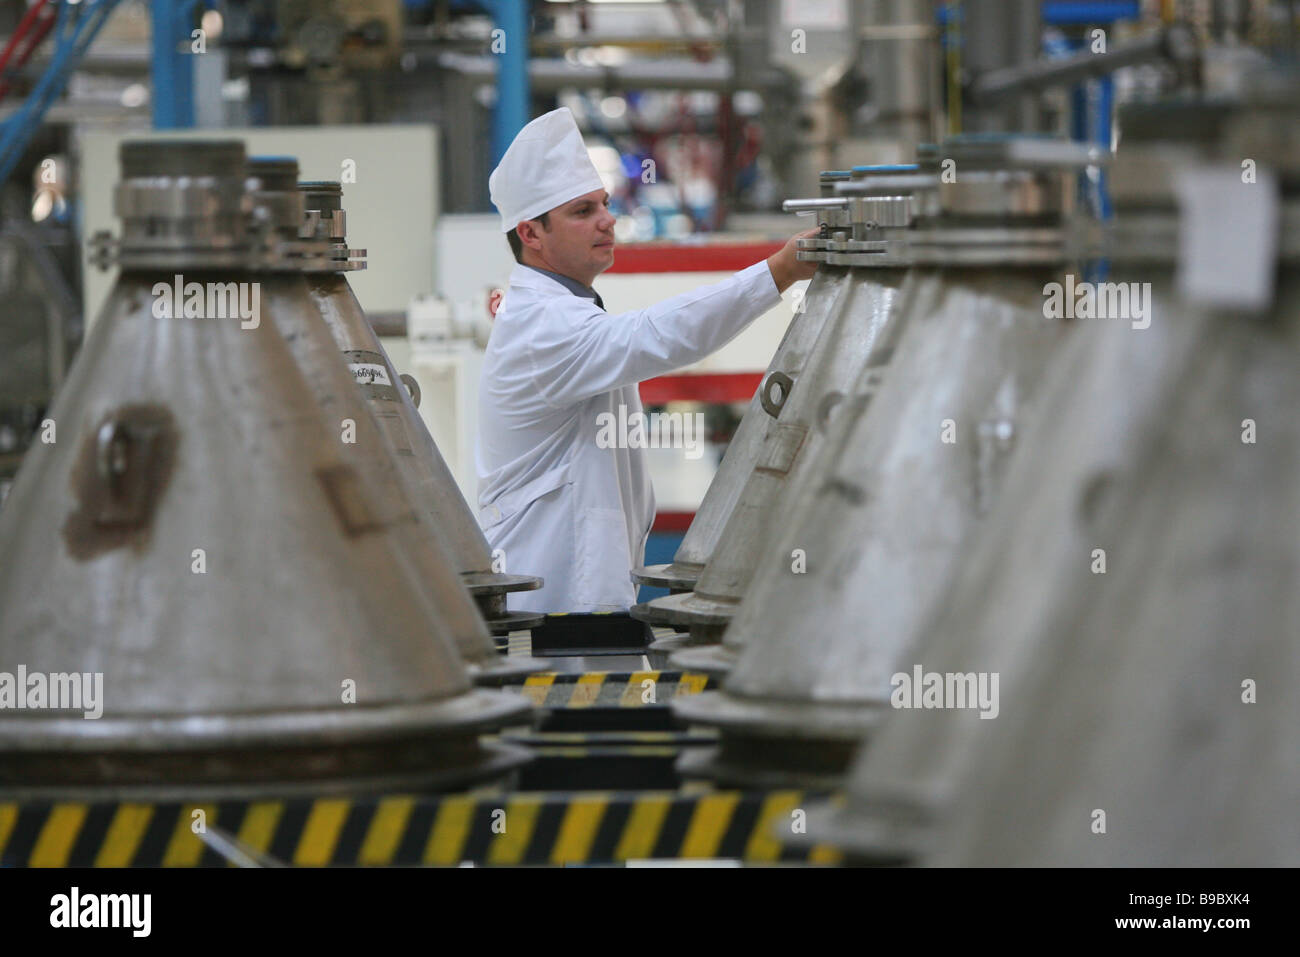 Uranium dioxide powder bi conic containers in the Novosibirsk Chemical Concentrate Works power reactor fuel production - Stock Image